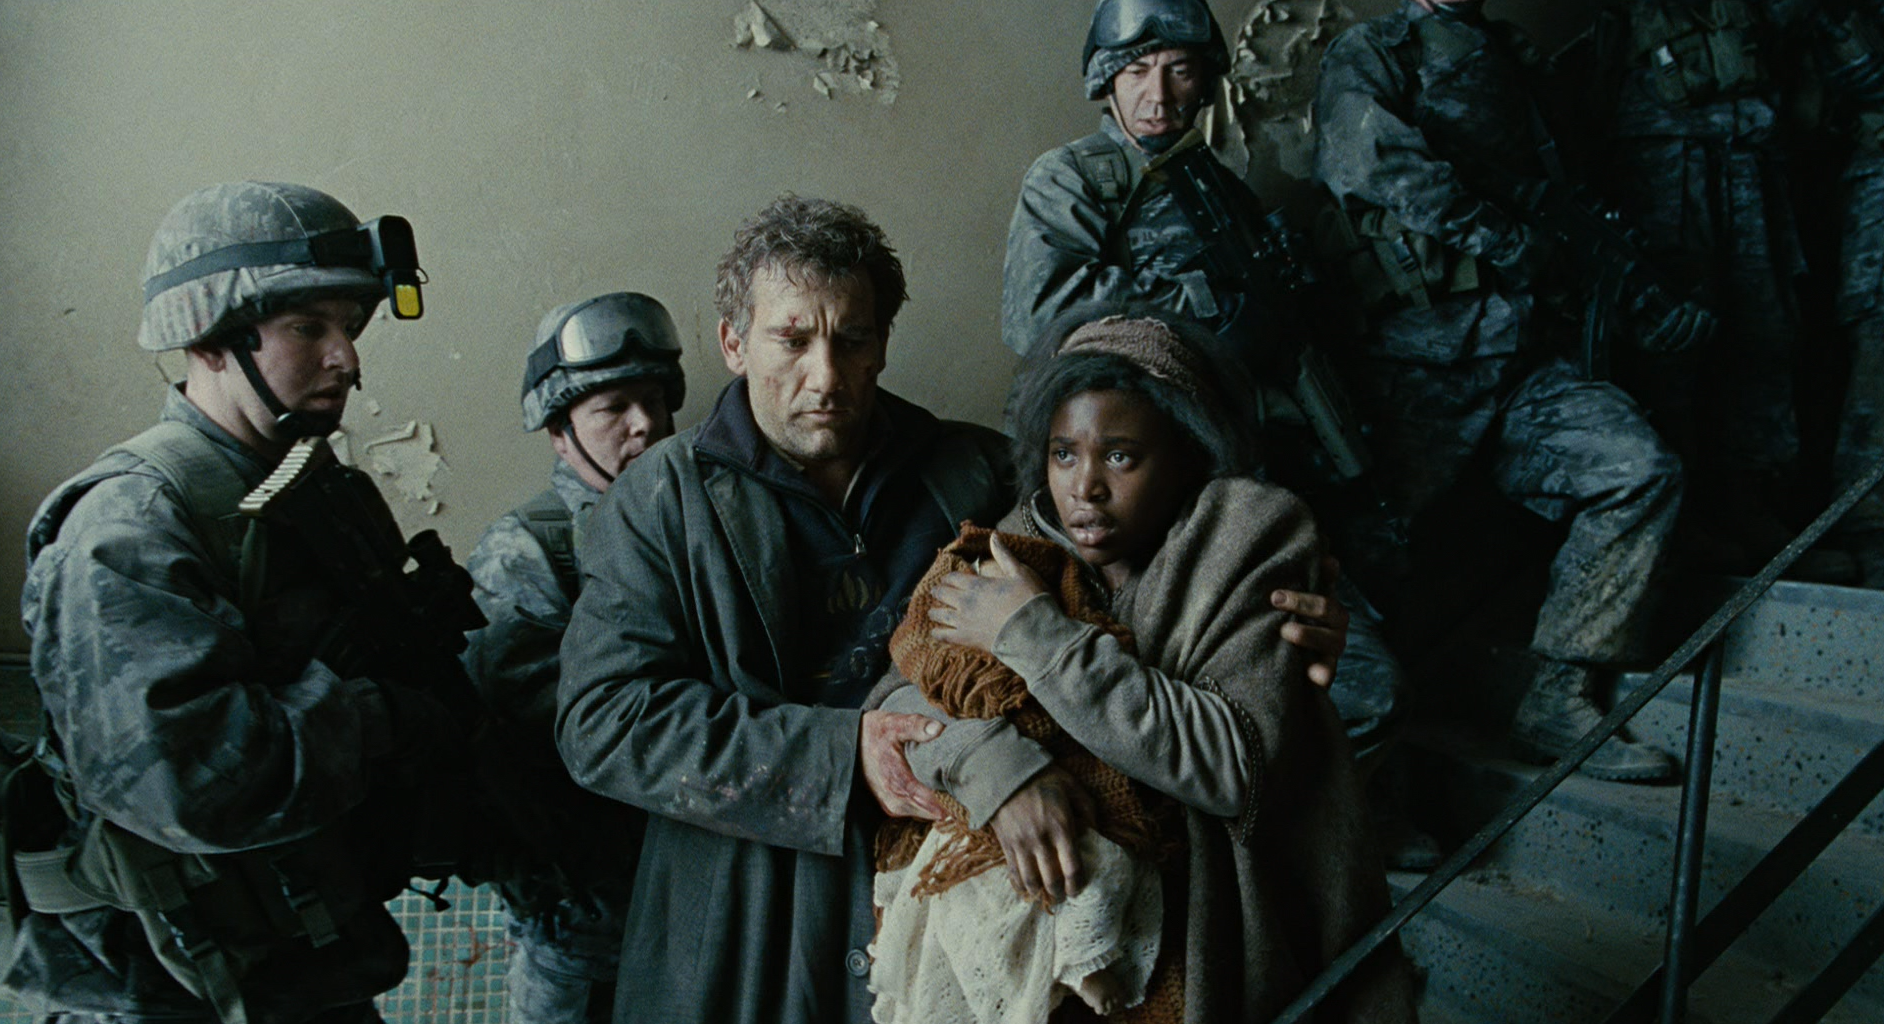 https://www.indiewire.com/wp-content/uploads/2016/07/children_of_men_stairwell11.png